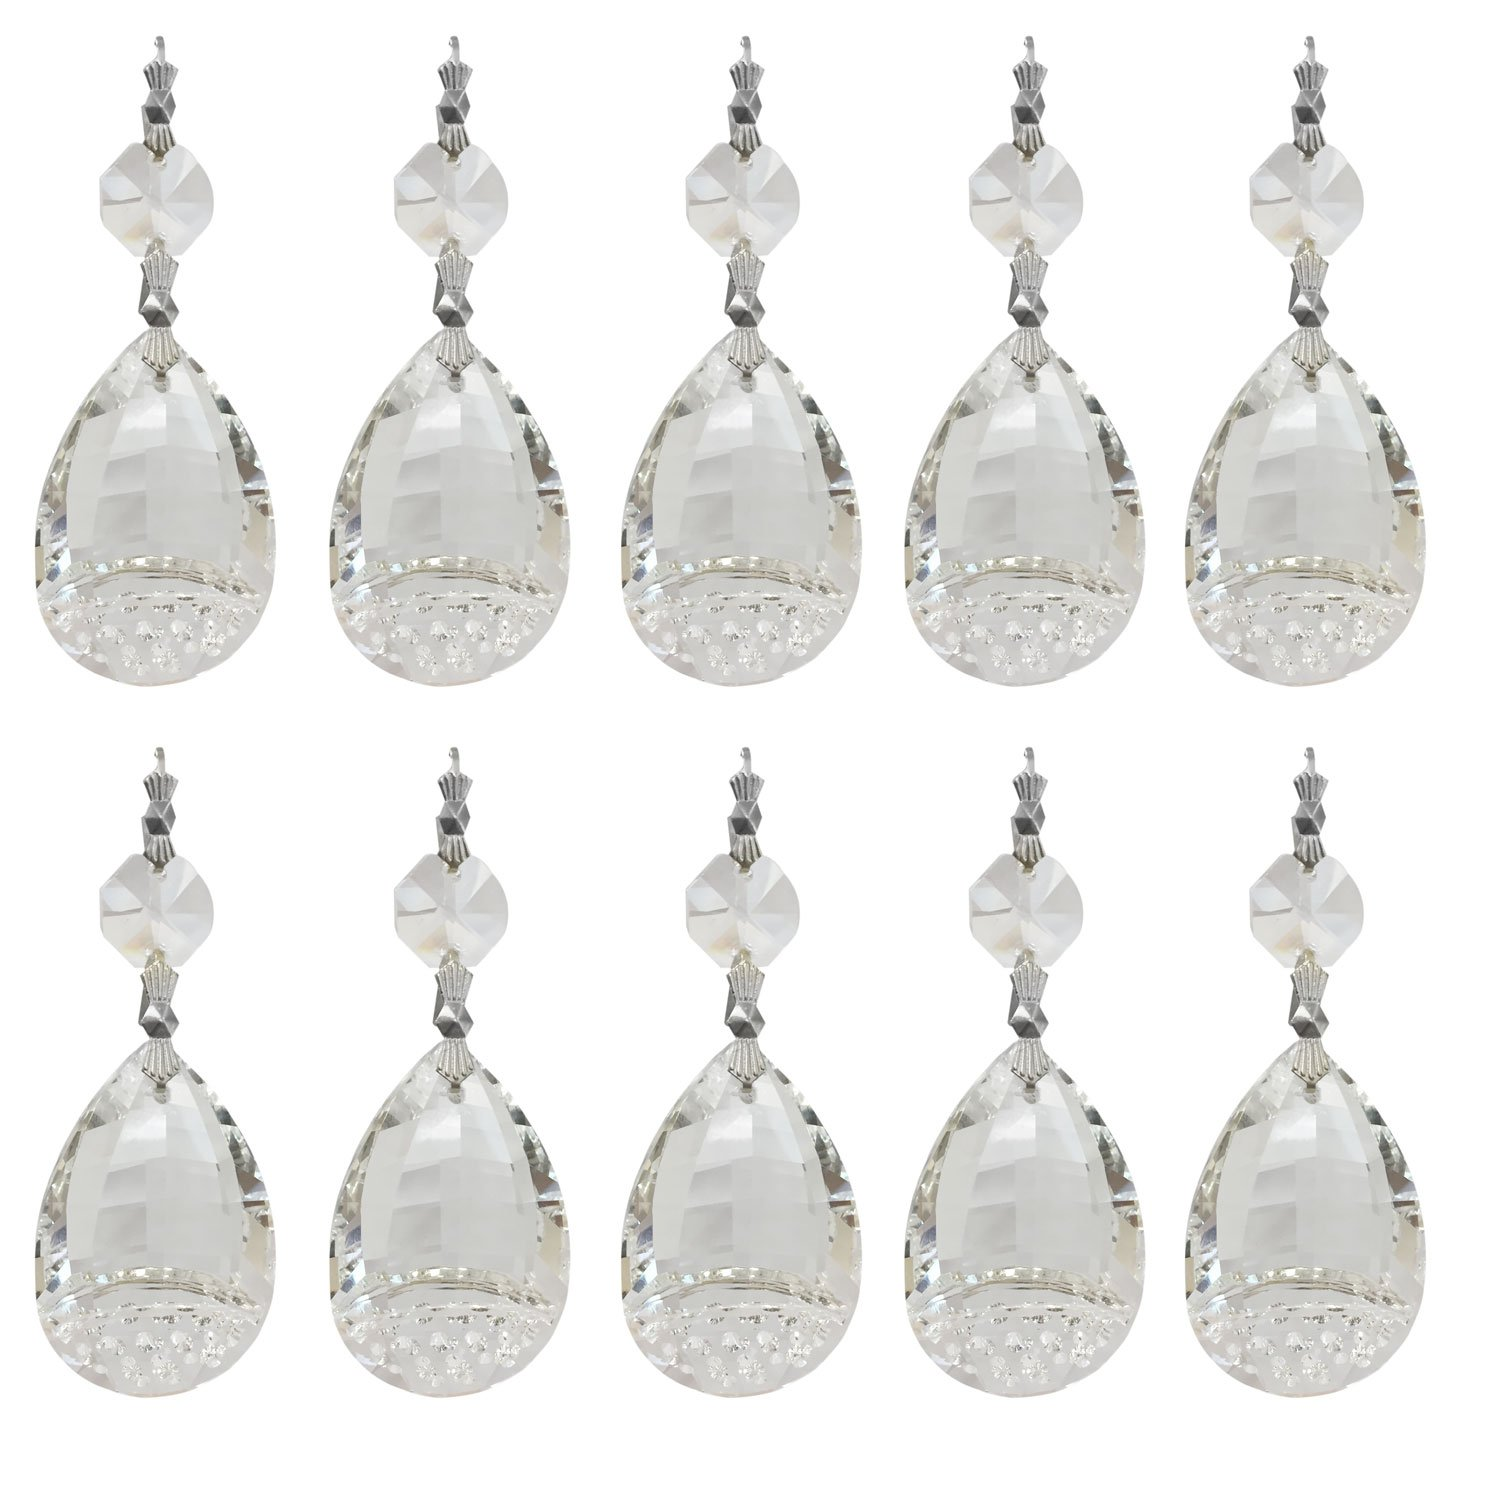 Royal Designs Replacement Chandelier Crystal Prism Clear K9 Quality Variegated Tear Drop Prism with Chrome Connectors and an Octogan Crystal Bead Pack of 10 by Royal Designs, Inc